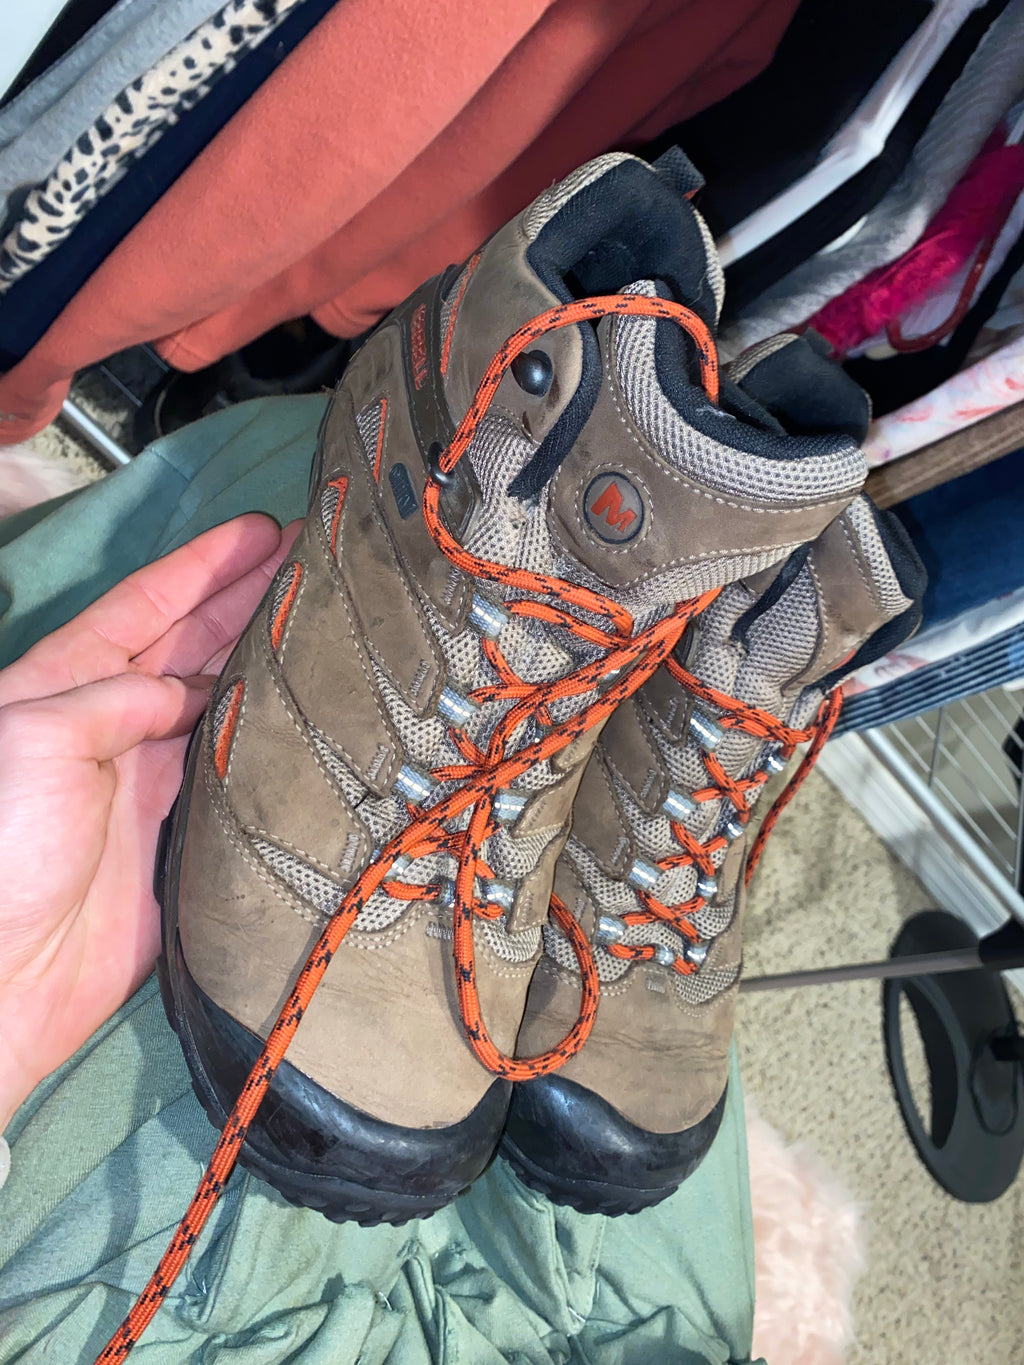 Merrell hiking size 11-12